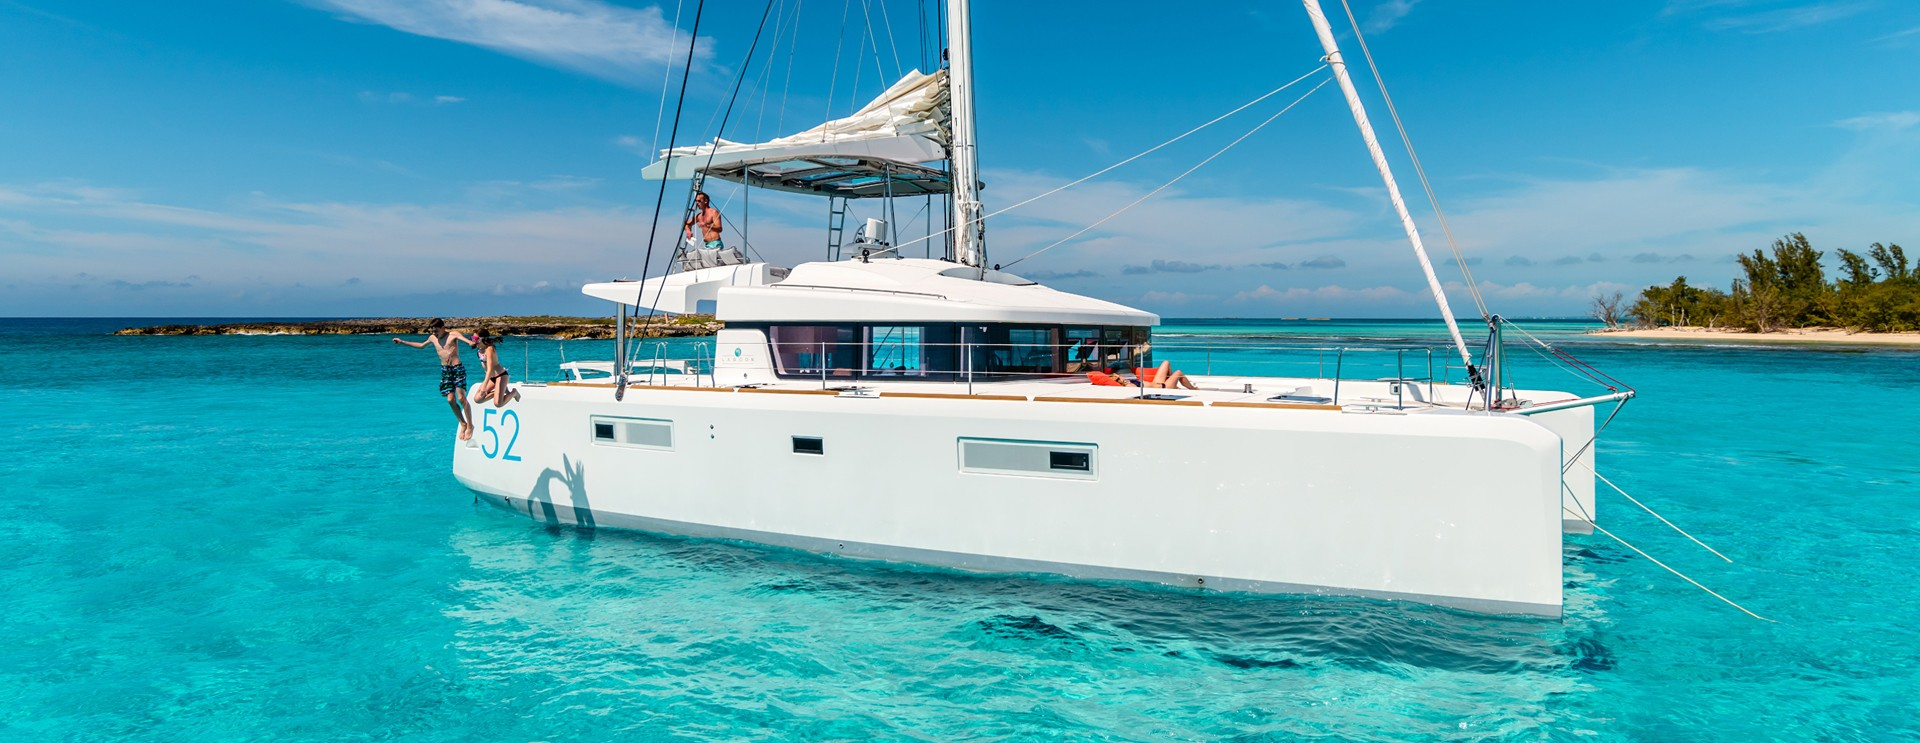 Three advantages of hiring a yacht charter